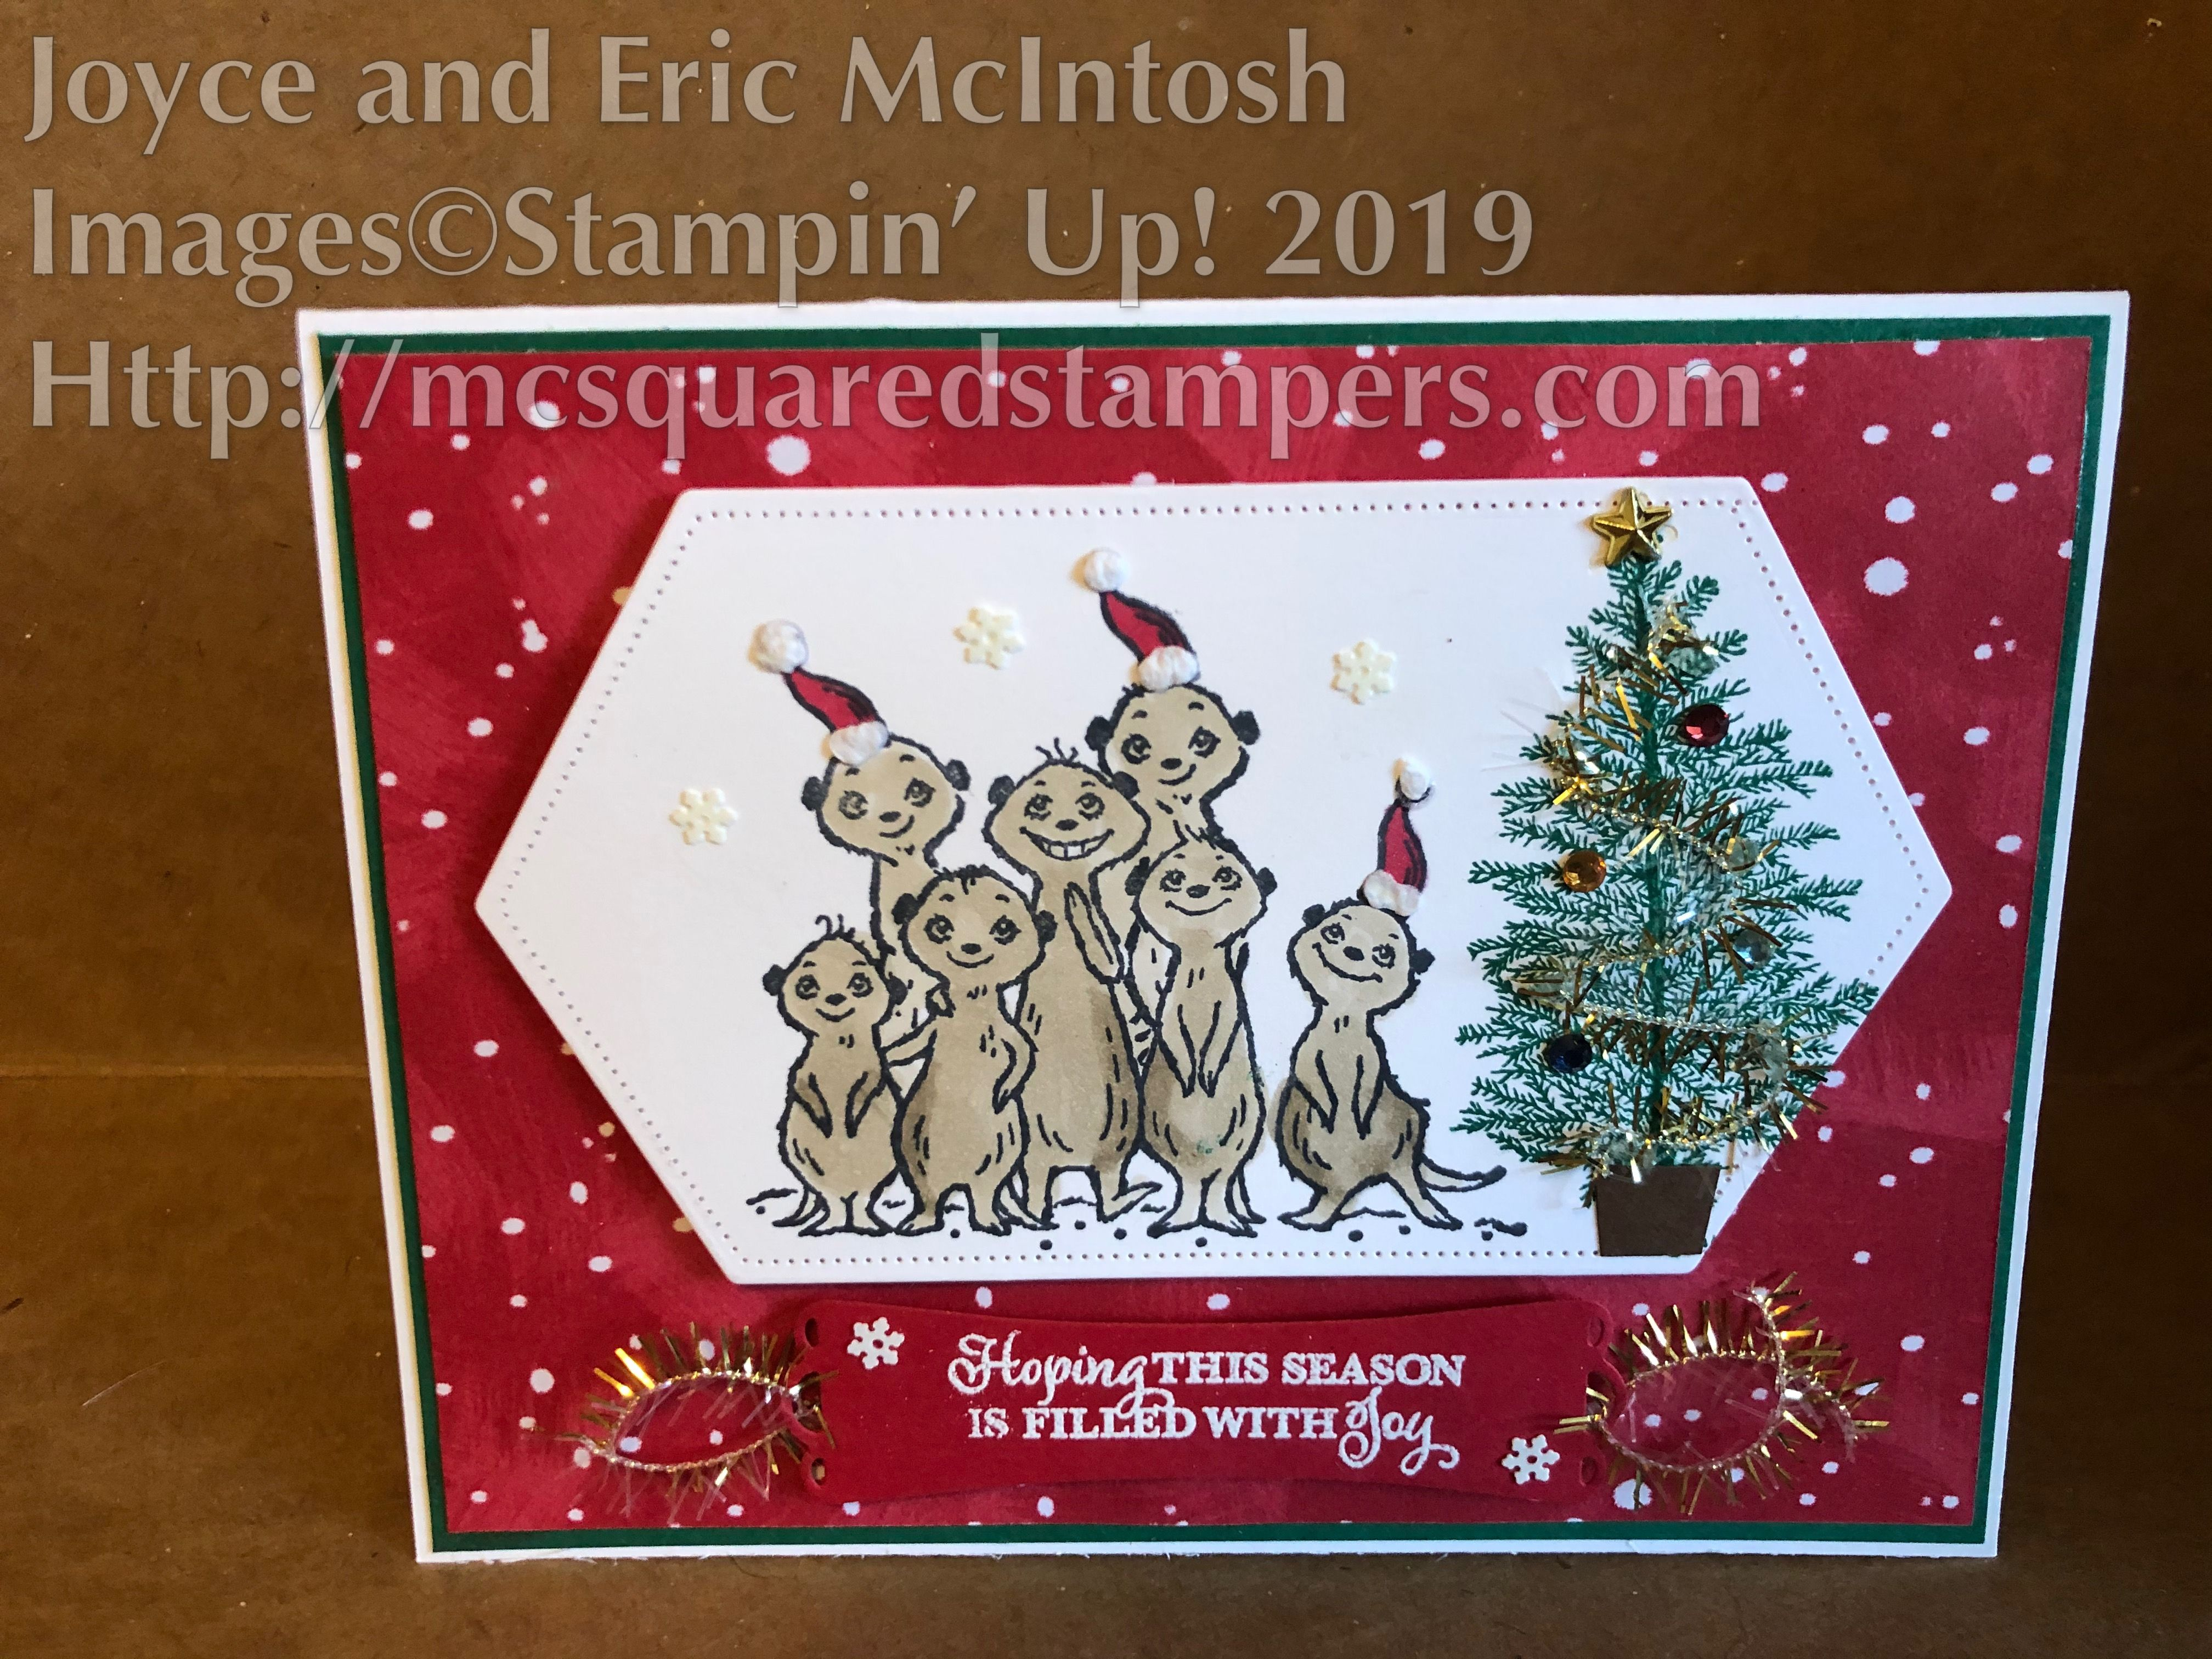 Stampin Up Christmas Cards 2020 Sneak preview of The Gang's All Meer. Coming January 2020